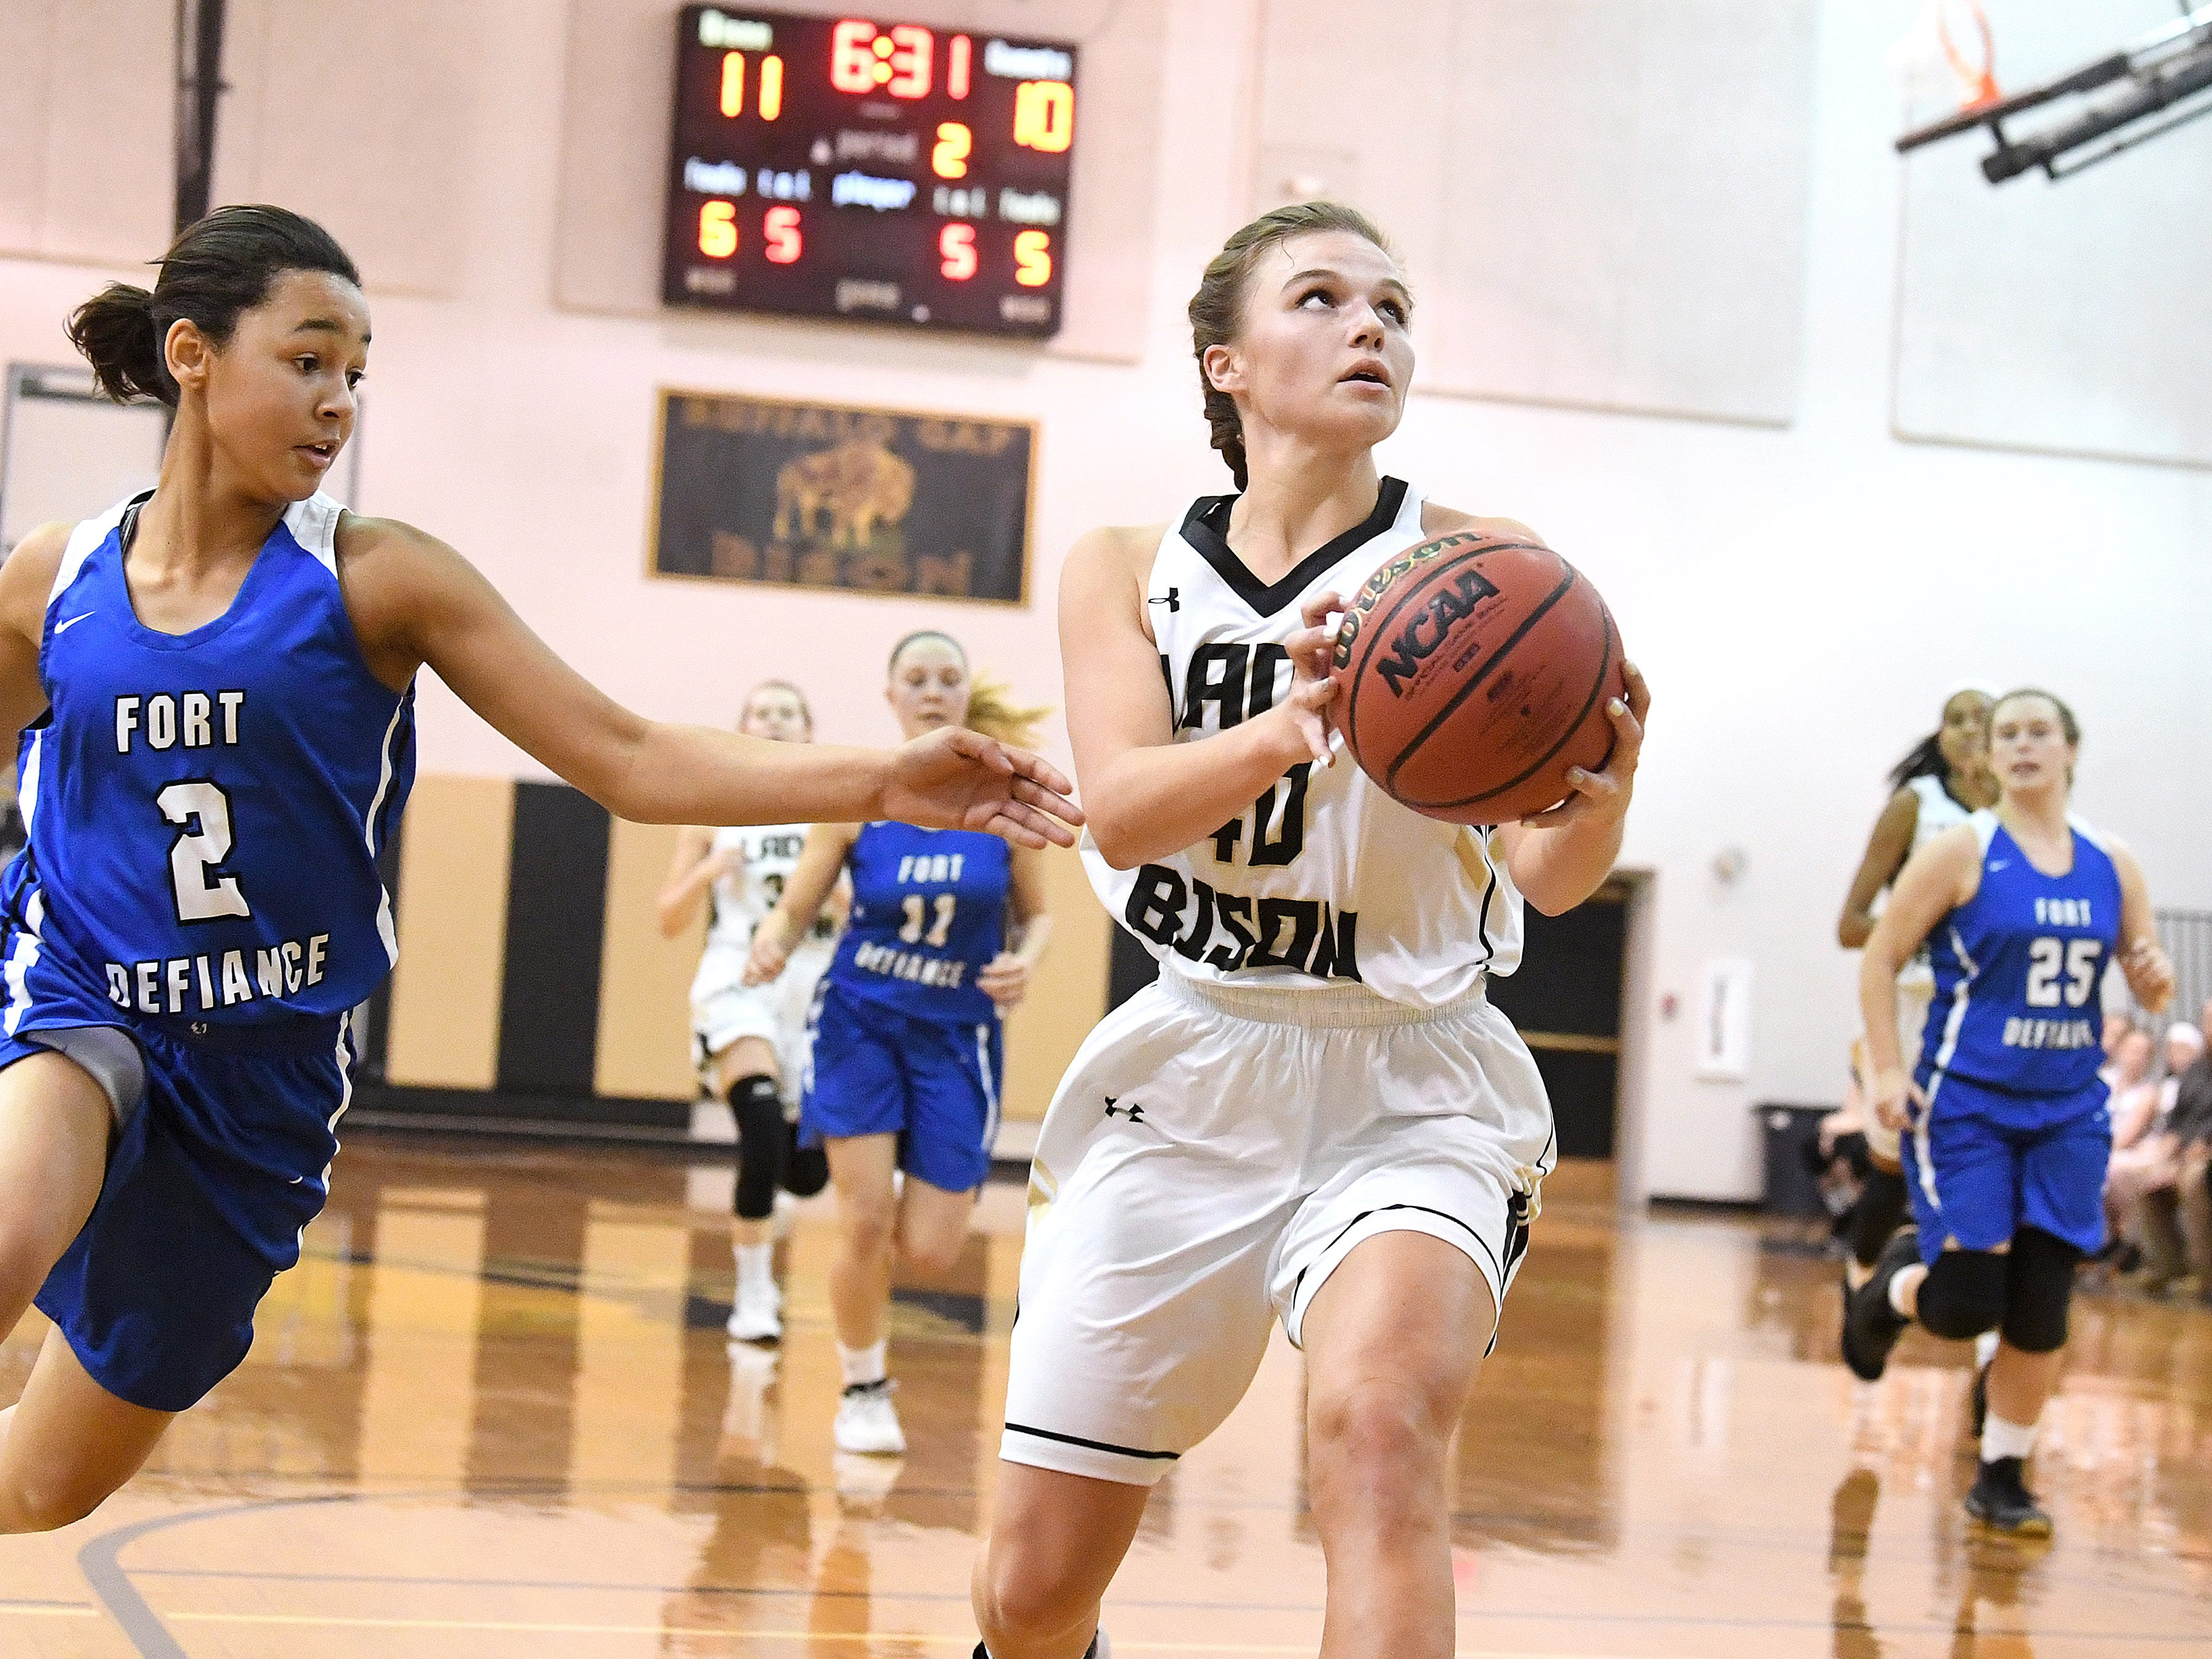 Buffalo Gap's Sydney Digman looks to the basket and prepares to shoot as Fort Defiance's Kiersten Ransome reaches towards the ball during a game played in Swoope on Wednesday, Dec. 5, 2018.